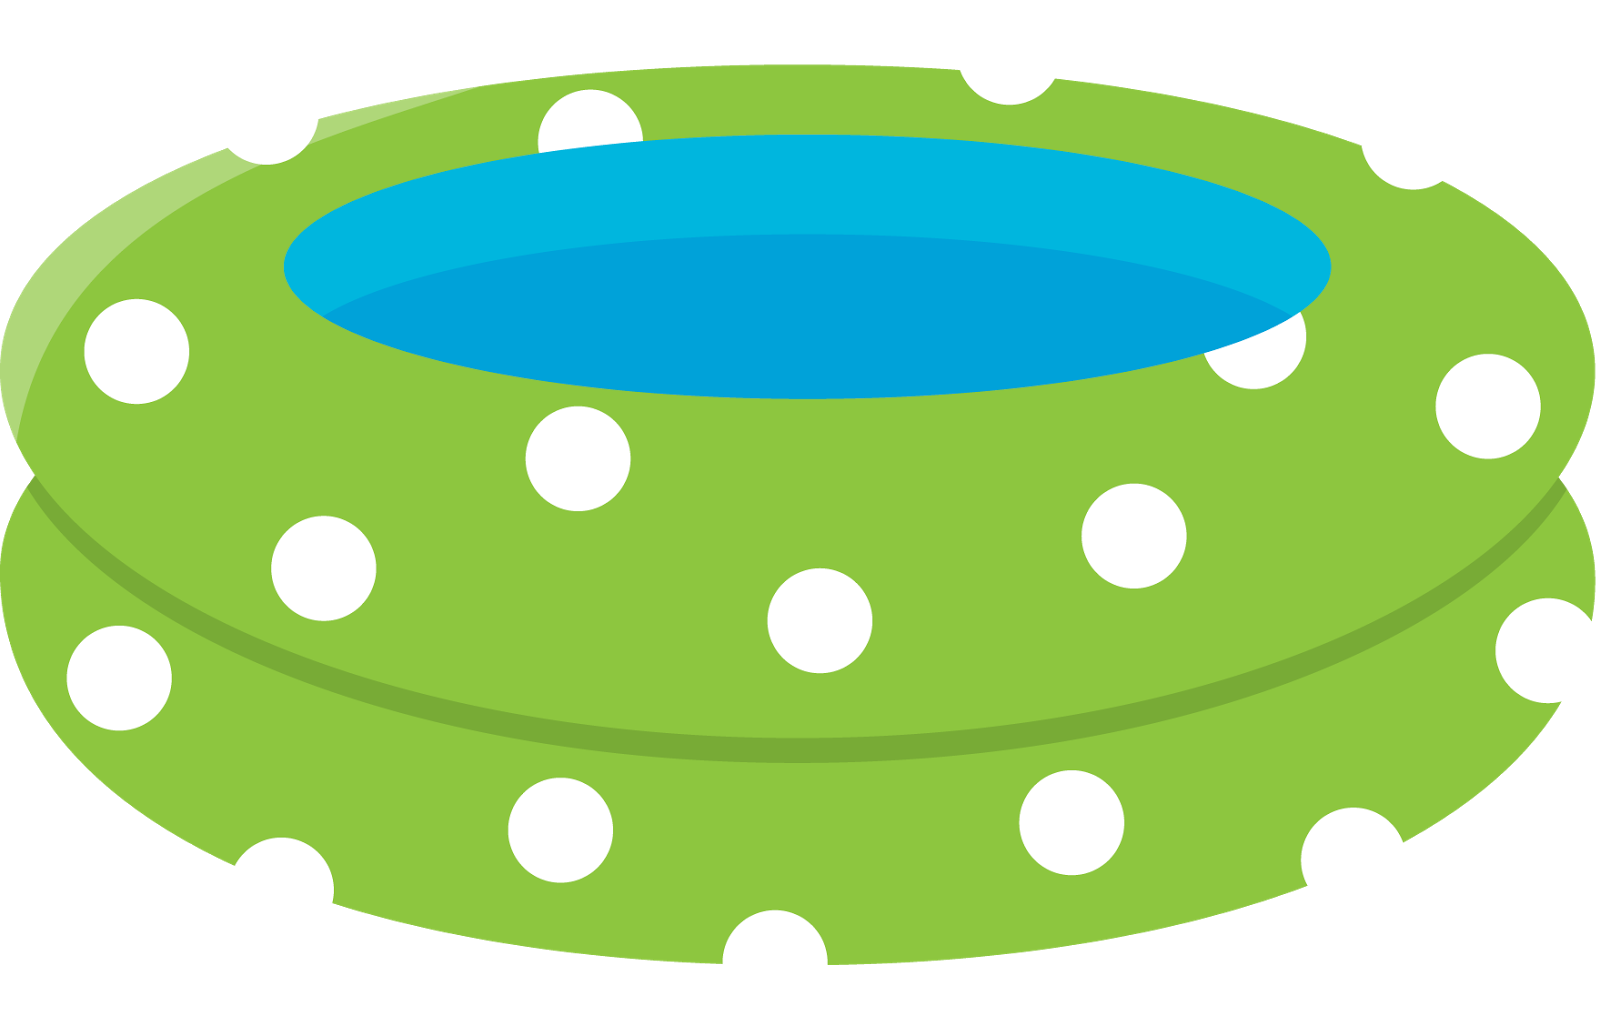 House pool clipart svg free download Pool Clipart   jokingart.com svg free download